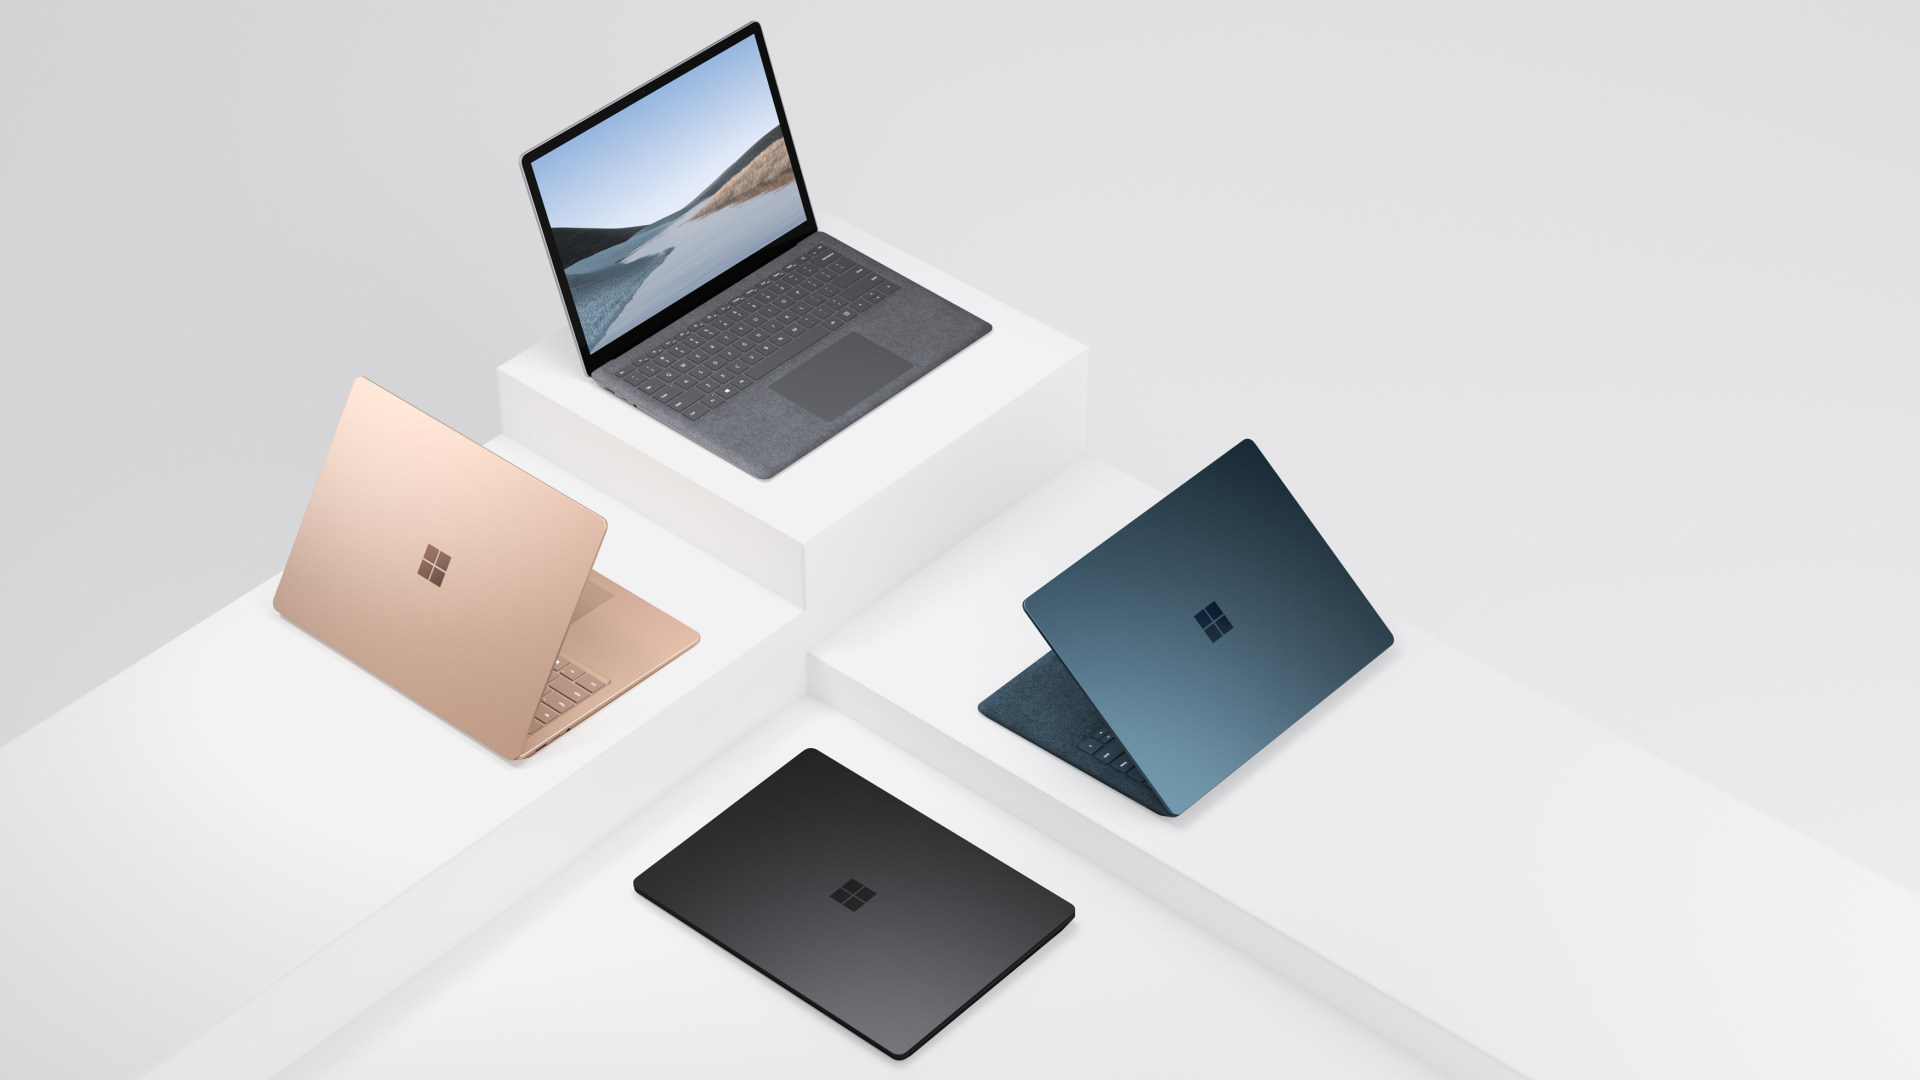 Microsoft, Surface, Tablets, 2-in-1, Notebooks, Laptops, Surface Laptop 3, Surface Pro 7